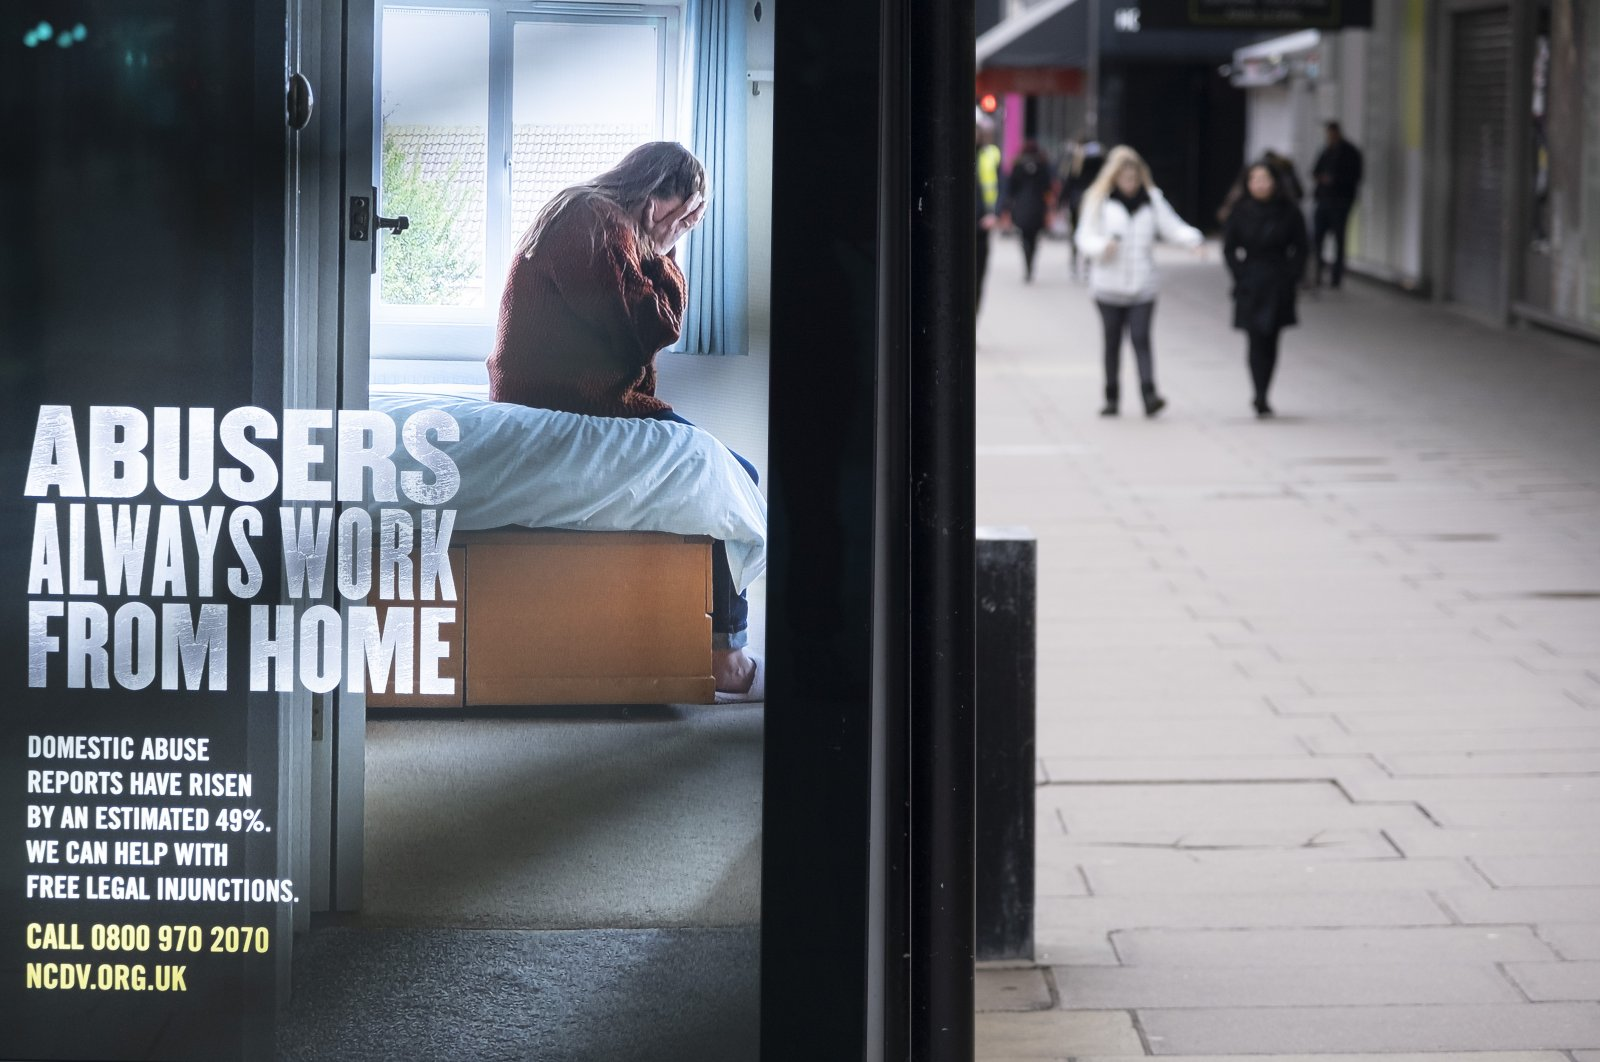 """A bus stop advertisement for the National Centre for Domestic Violencesays """"Abusers always work from home"""" during the national COVID-19 lockdowns in London, the U.K., March 4, 2021. (Getty Images)"""